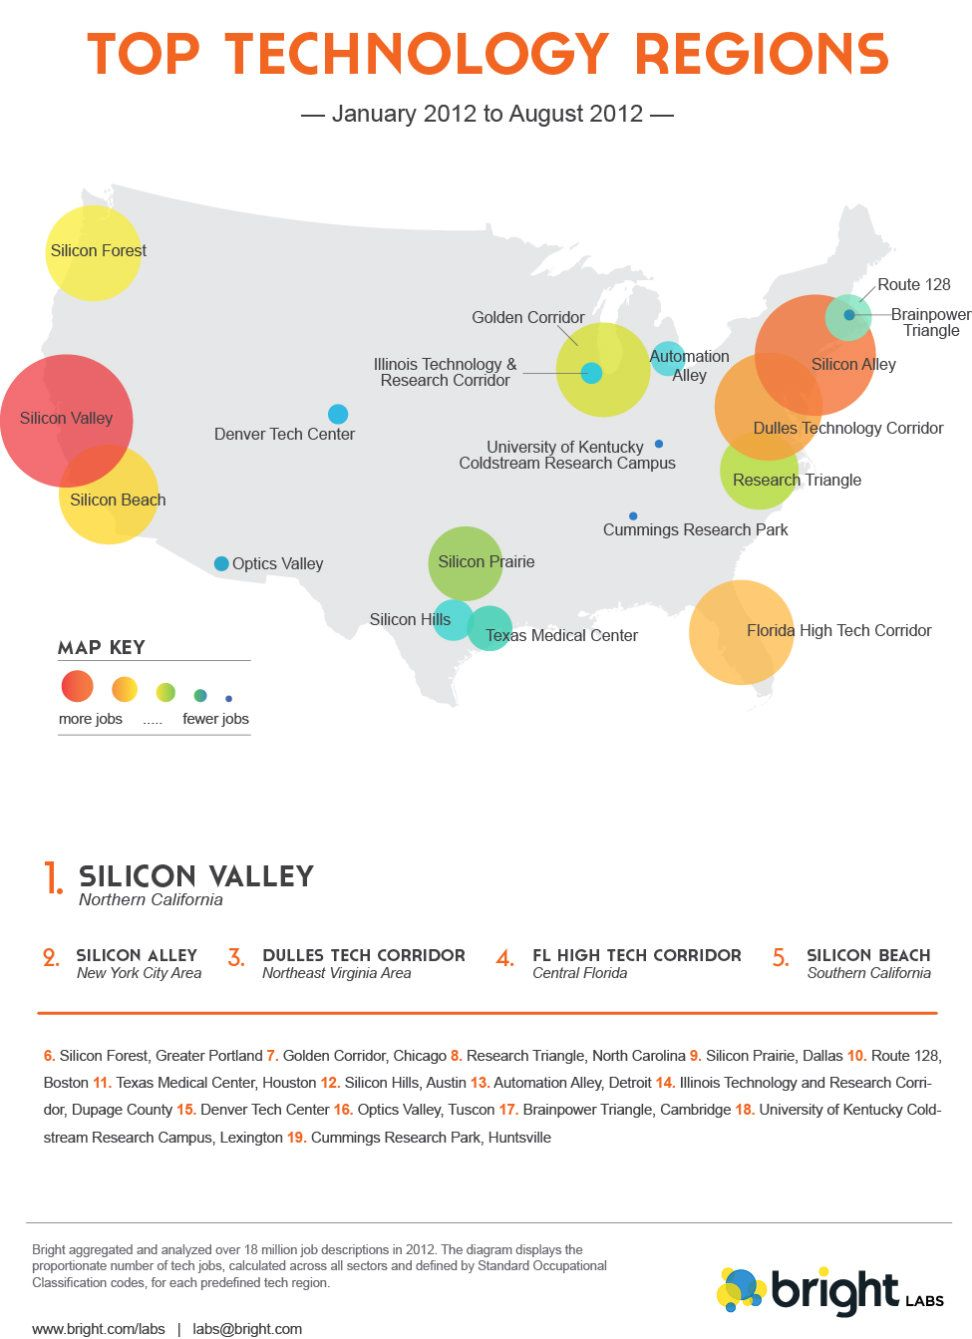 These Are the Tech Job Hot Spots [INFOGRAPHIC